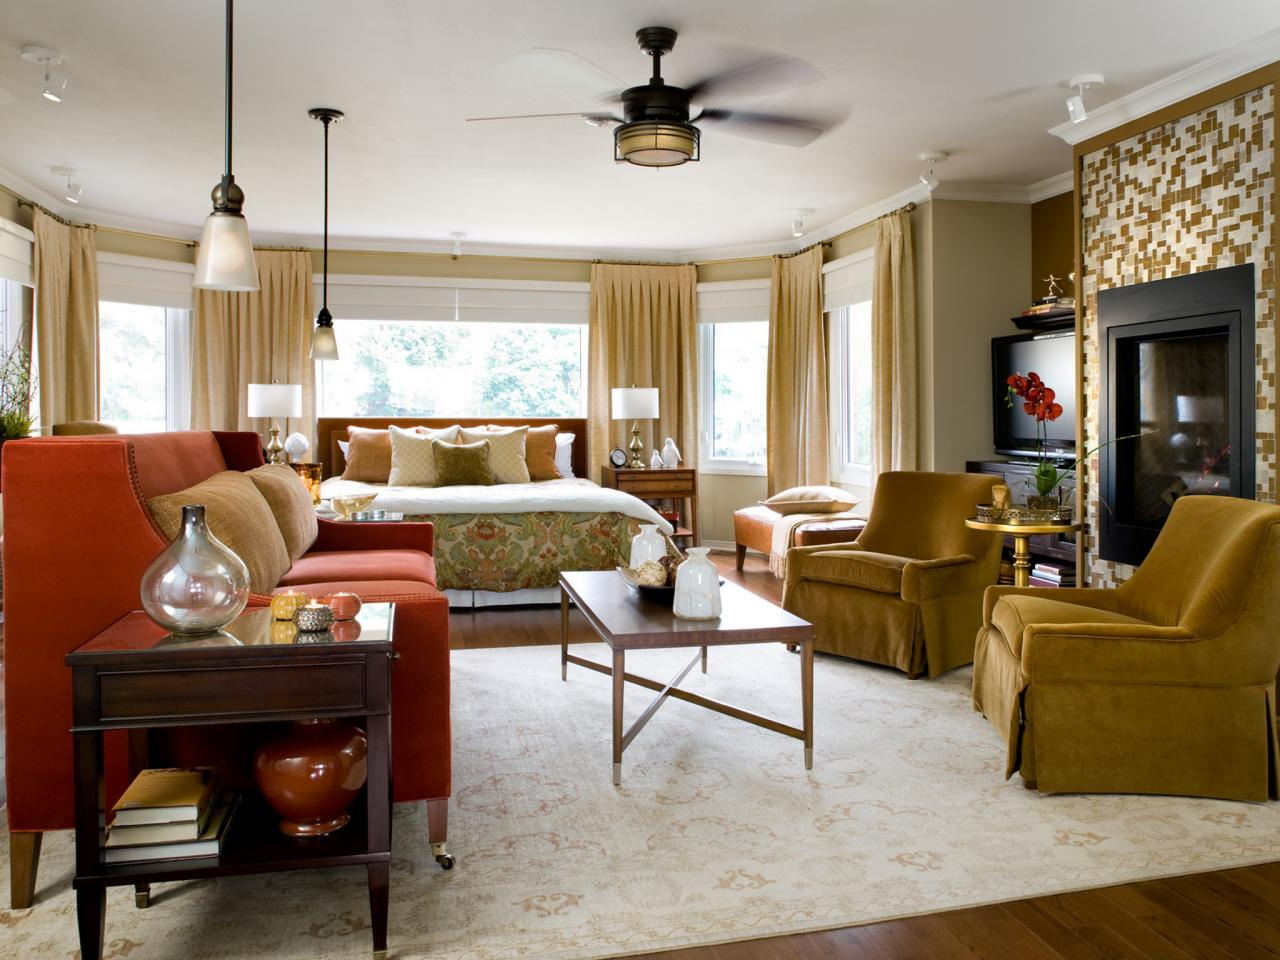 Best Colors for Master Bedrooms  Home Remodeling  Ideas for Basements Home Theaters  More  HGTV